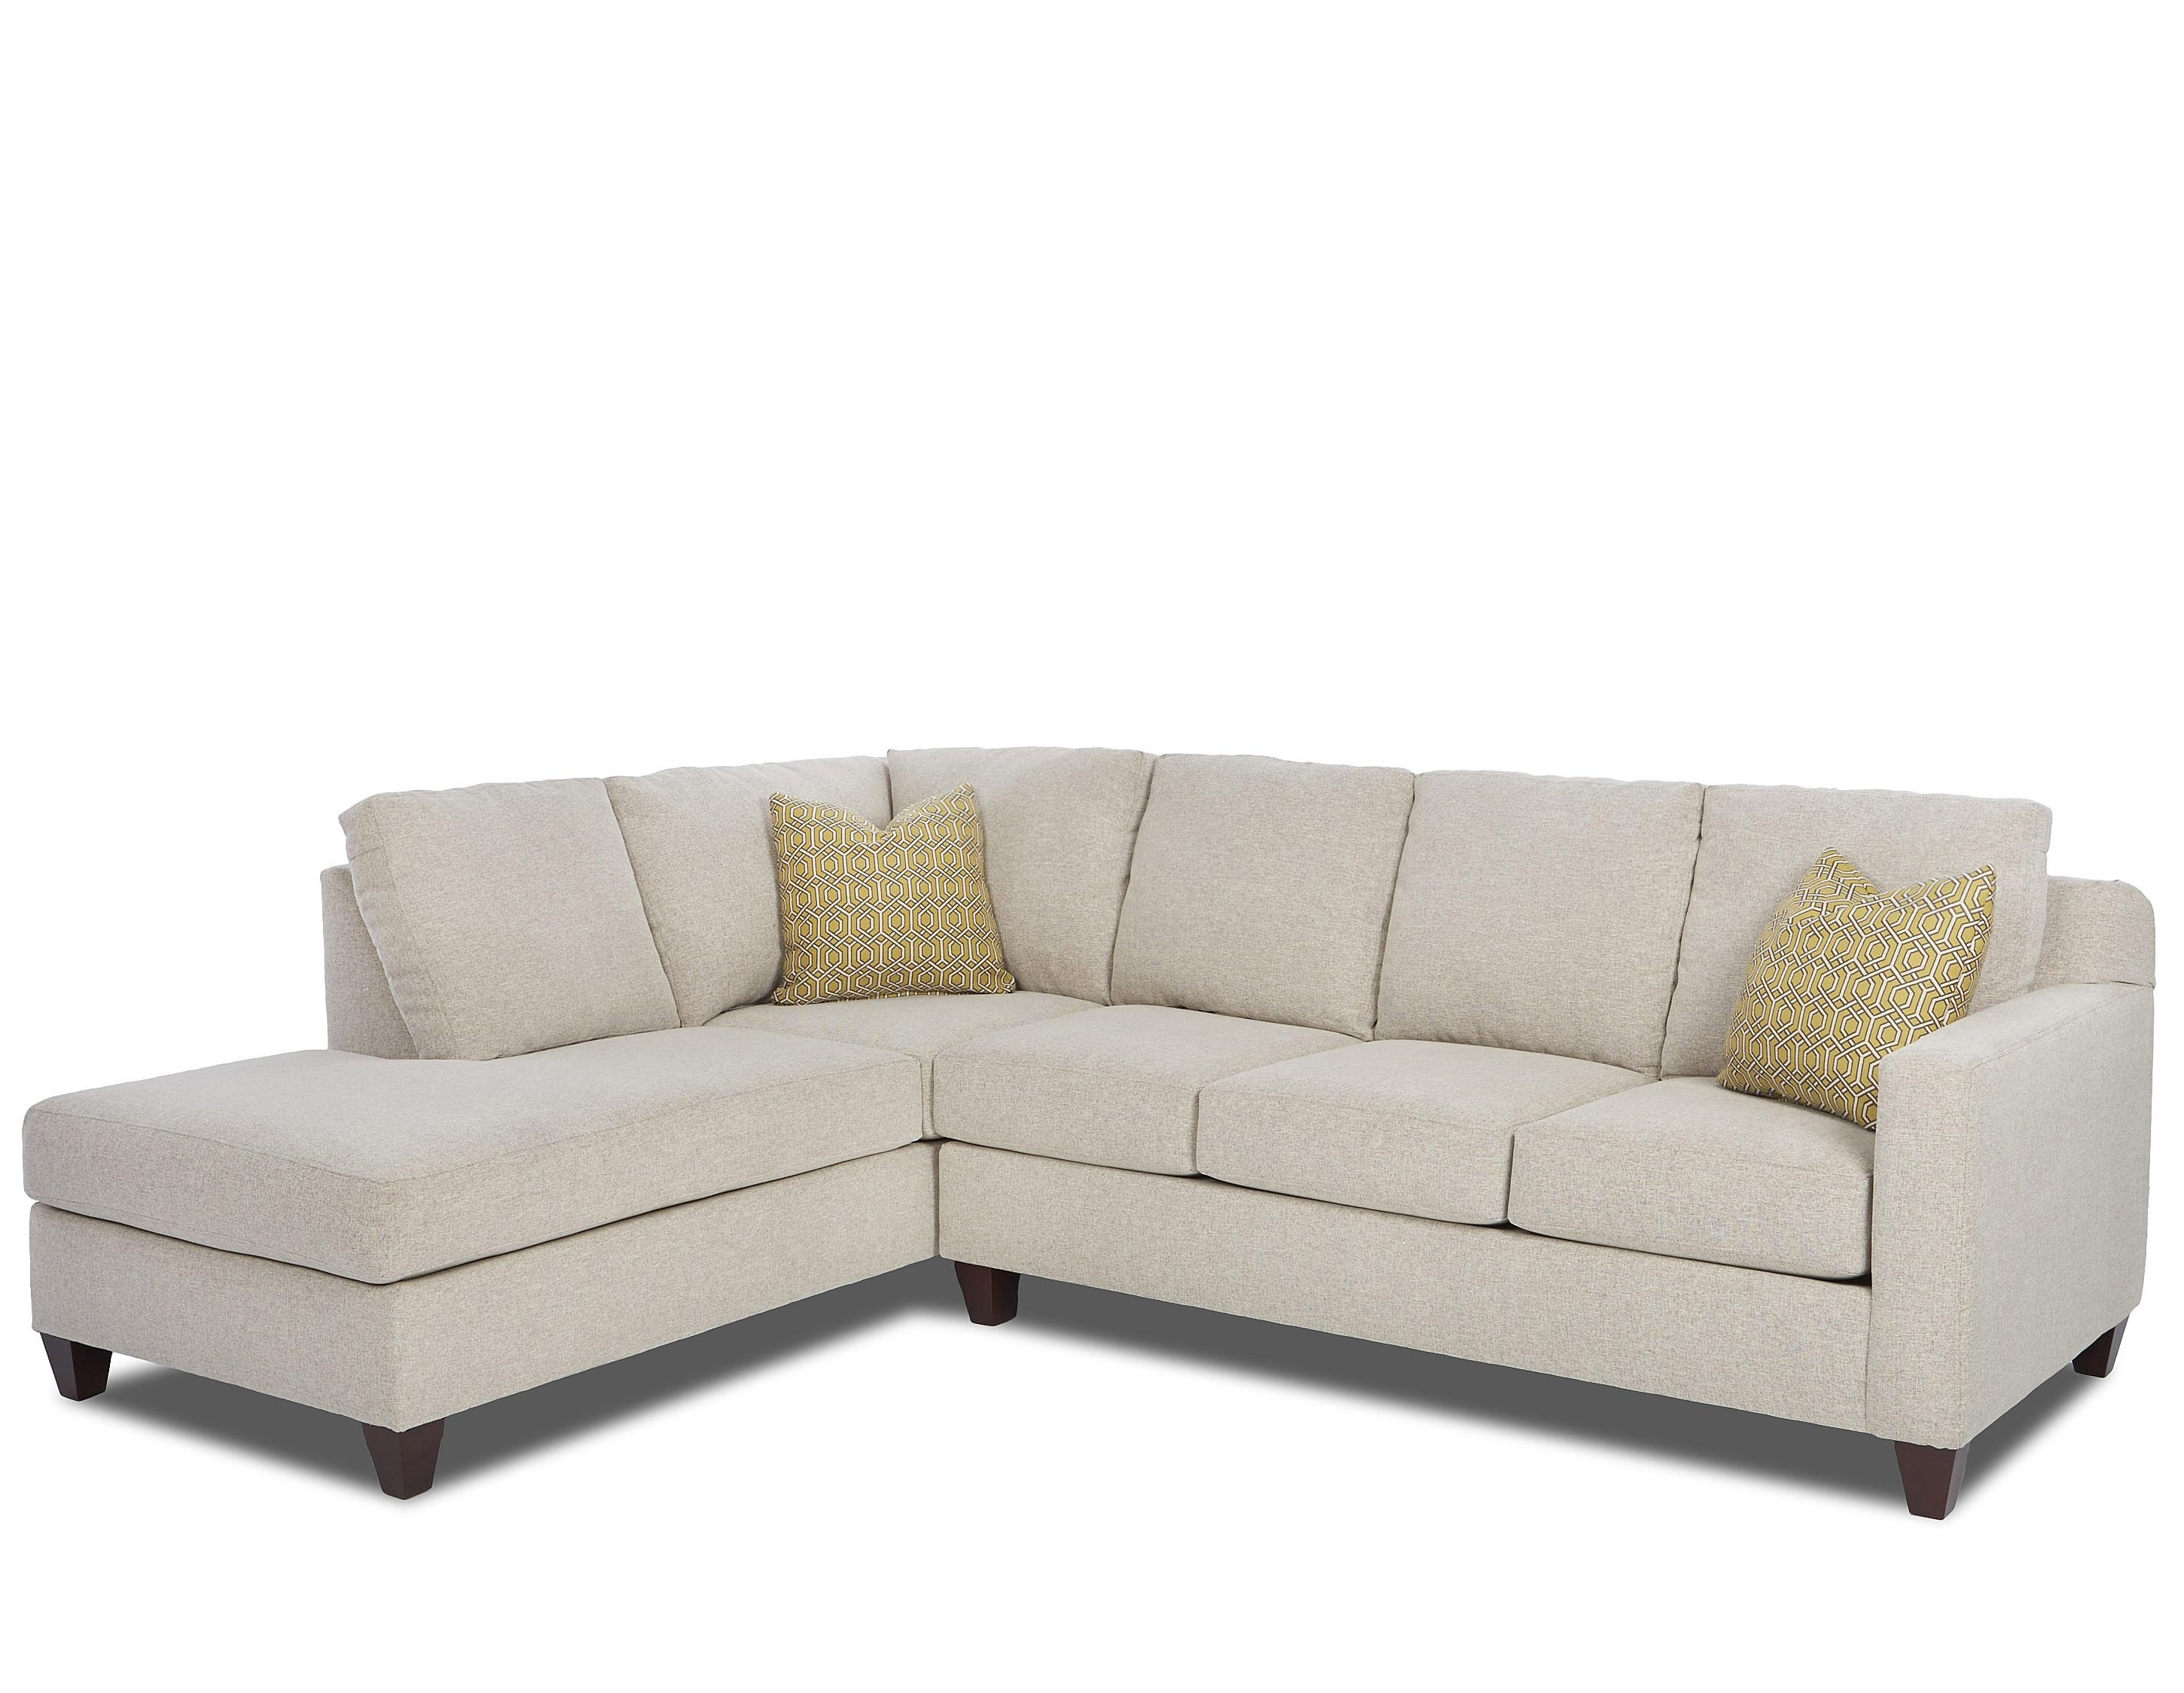 Newest Right Facing Chaise Sectionals Intended For Contemporary 2 Piece Sectional With Right Arm Facing Sofa Chaise (View 7 of 15)